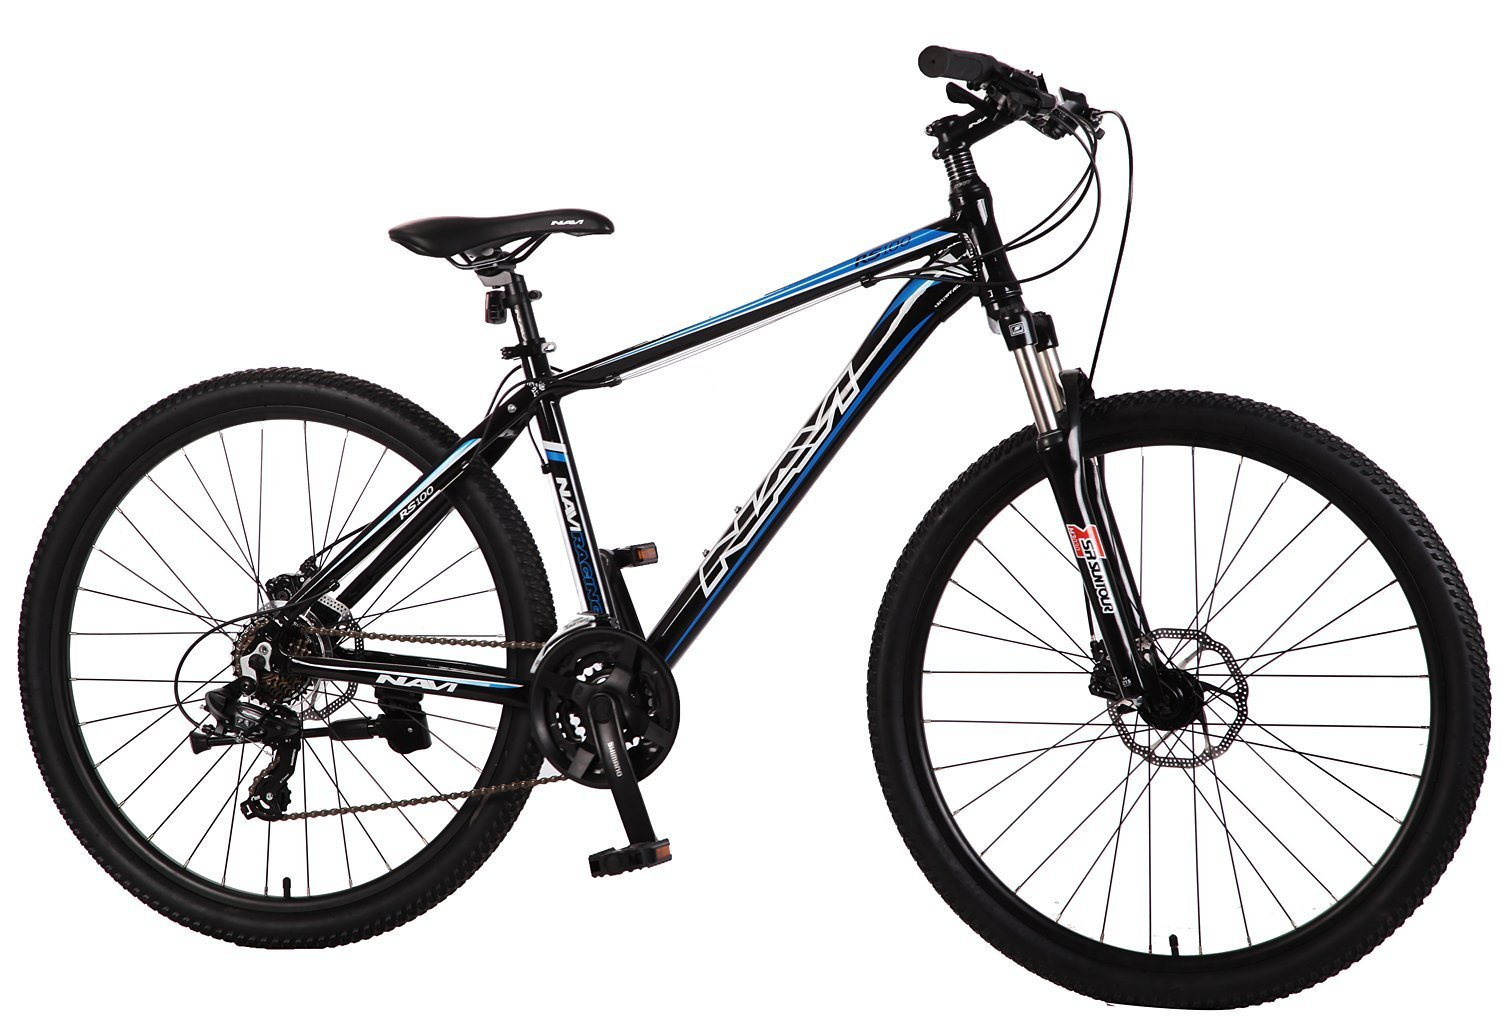 Navi RS100 Mountain Bike Review